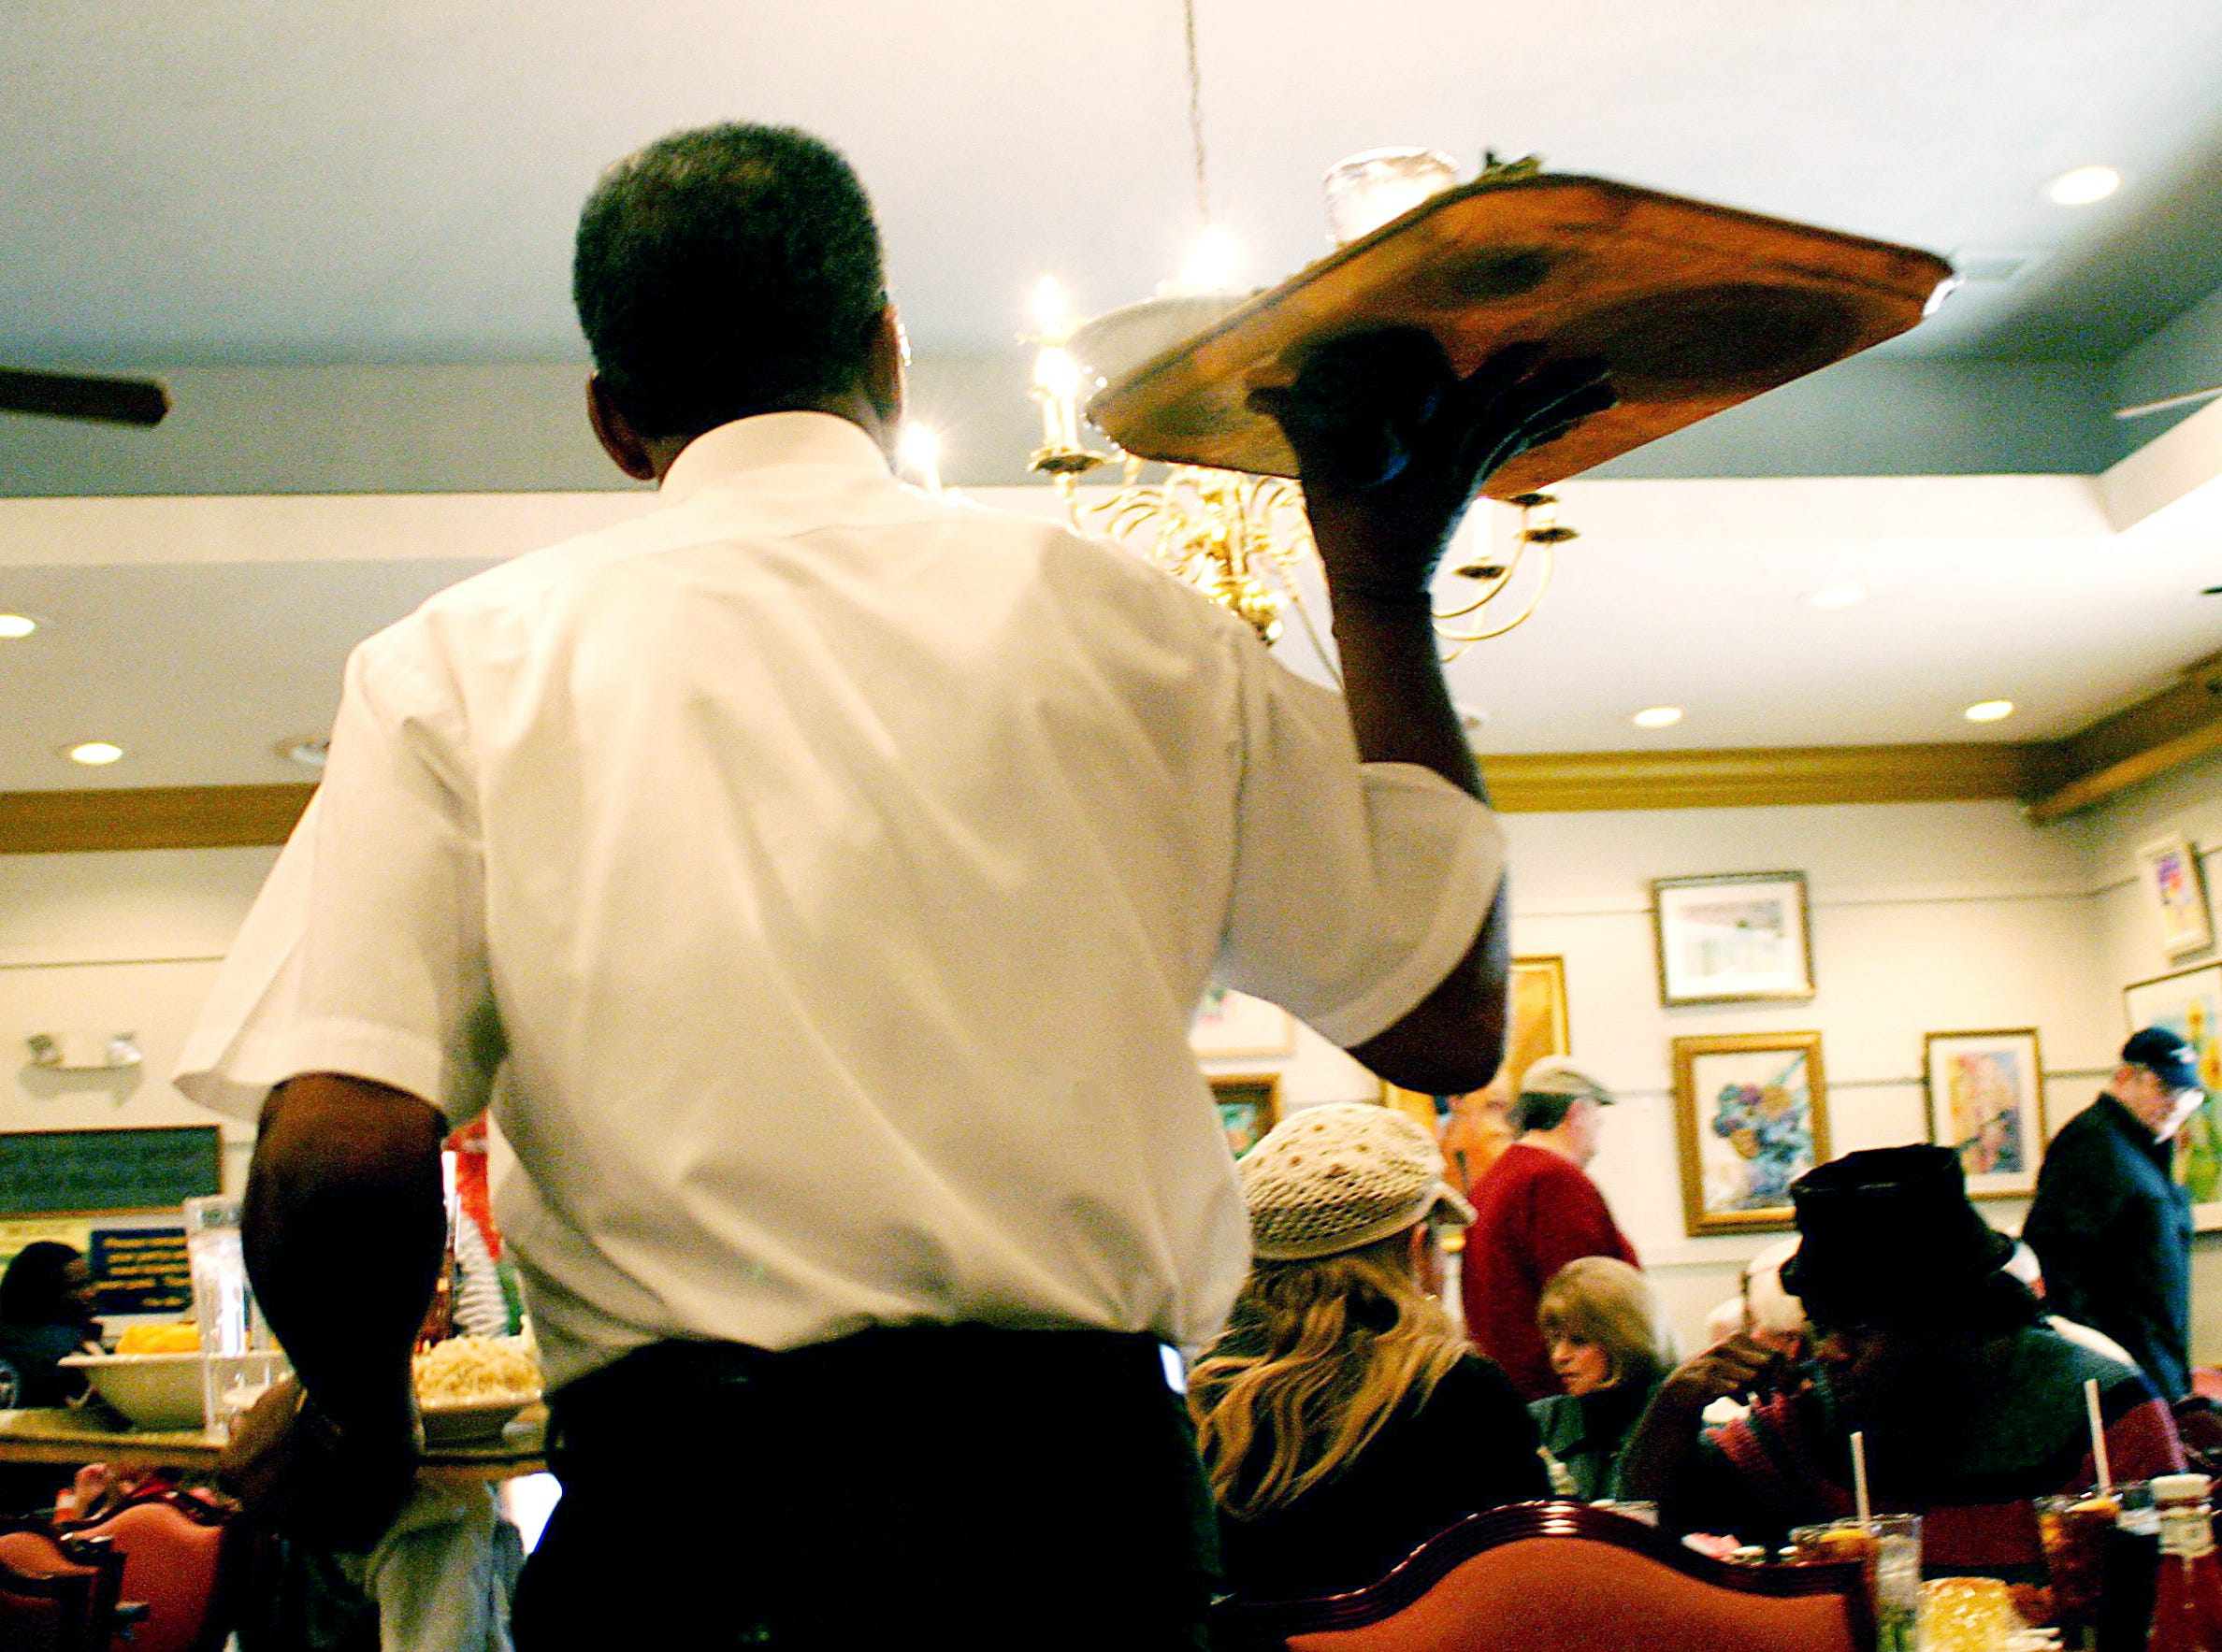 Bobby Spurlock, a waiter at The Belle Meade Cafeteria carries a tray to a guest as the lunch time crowd fills the room Dec. 31, 2003.